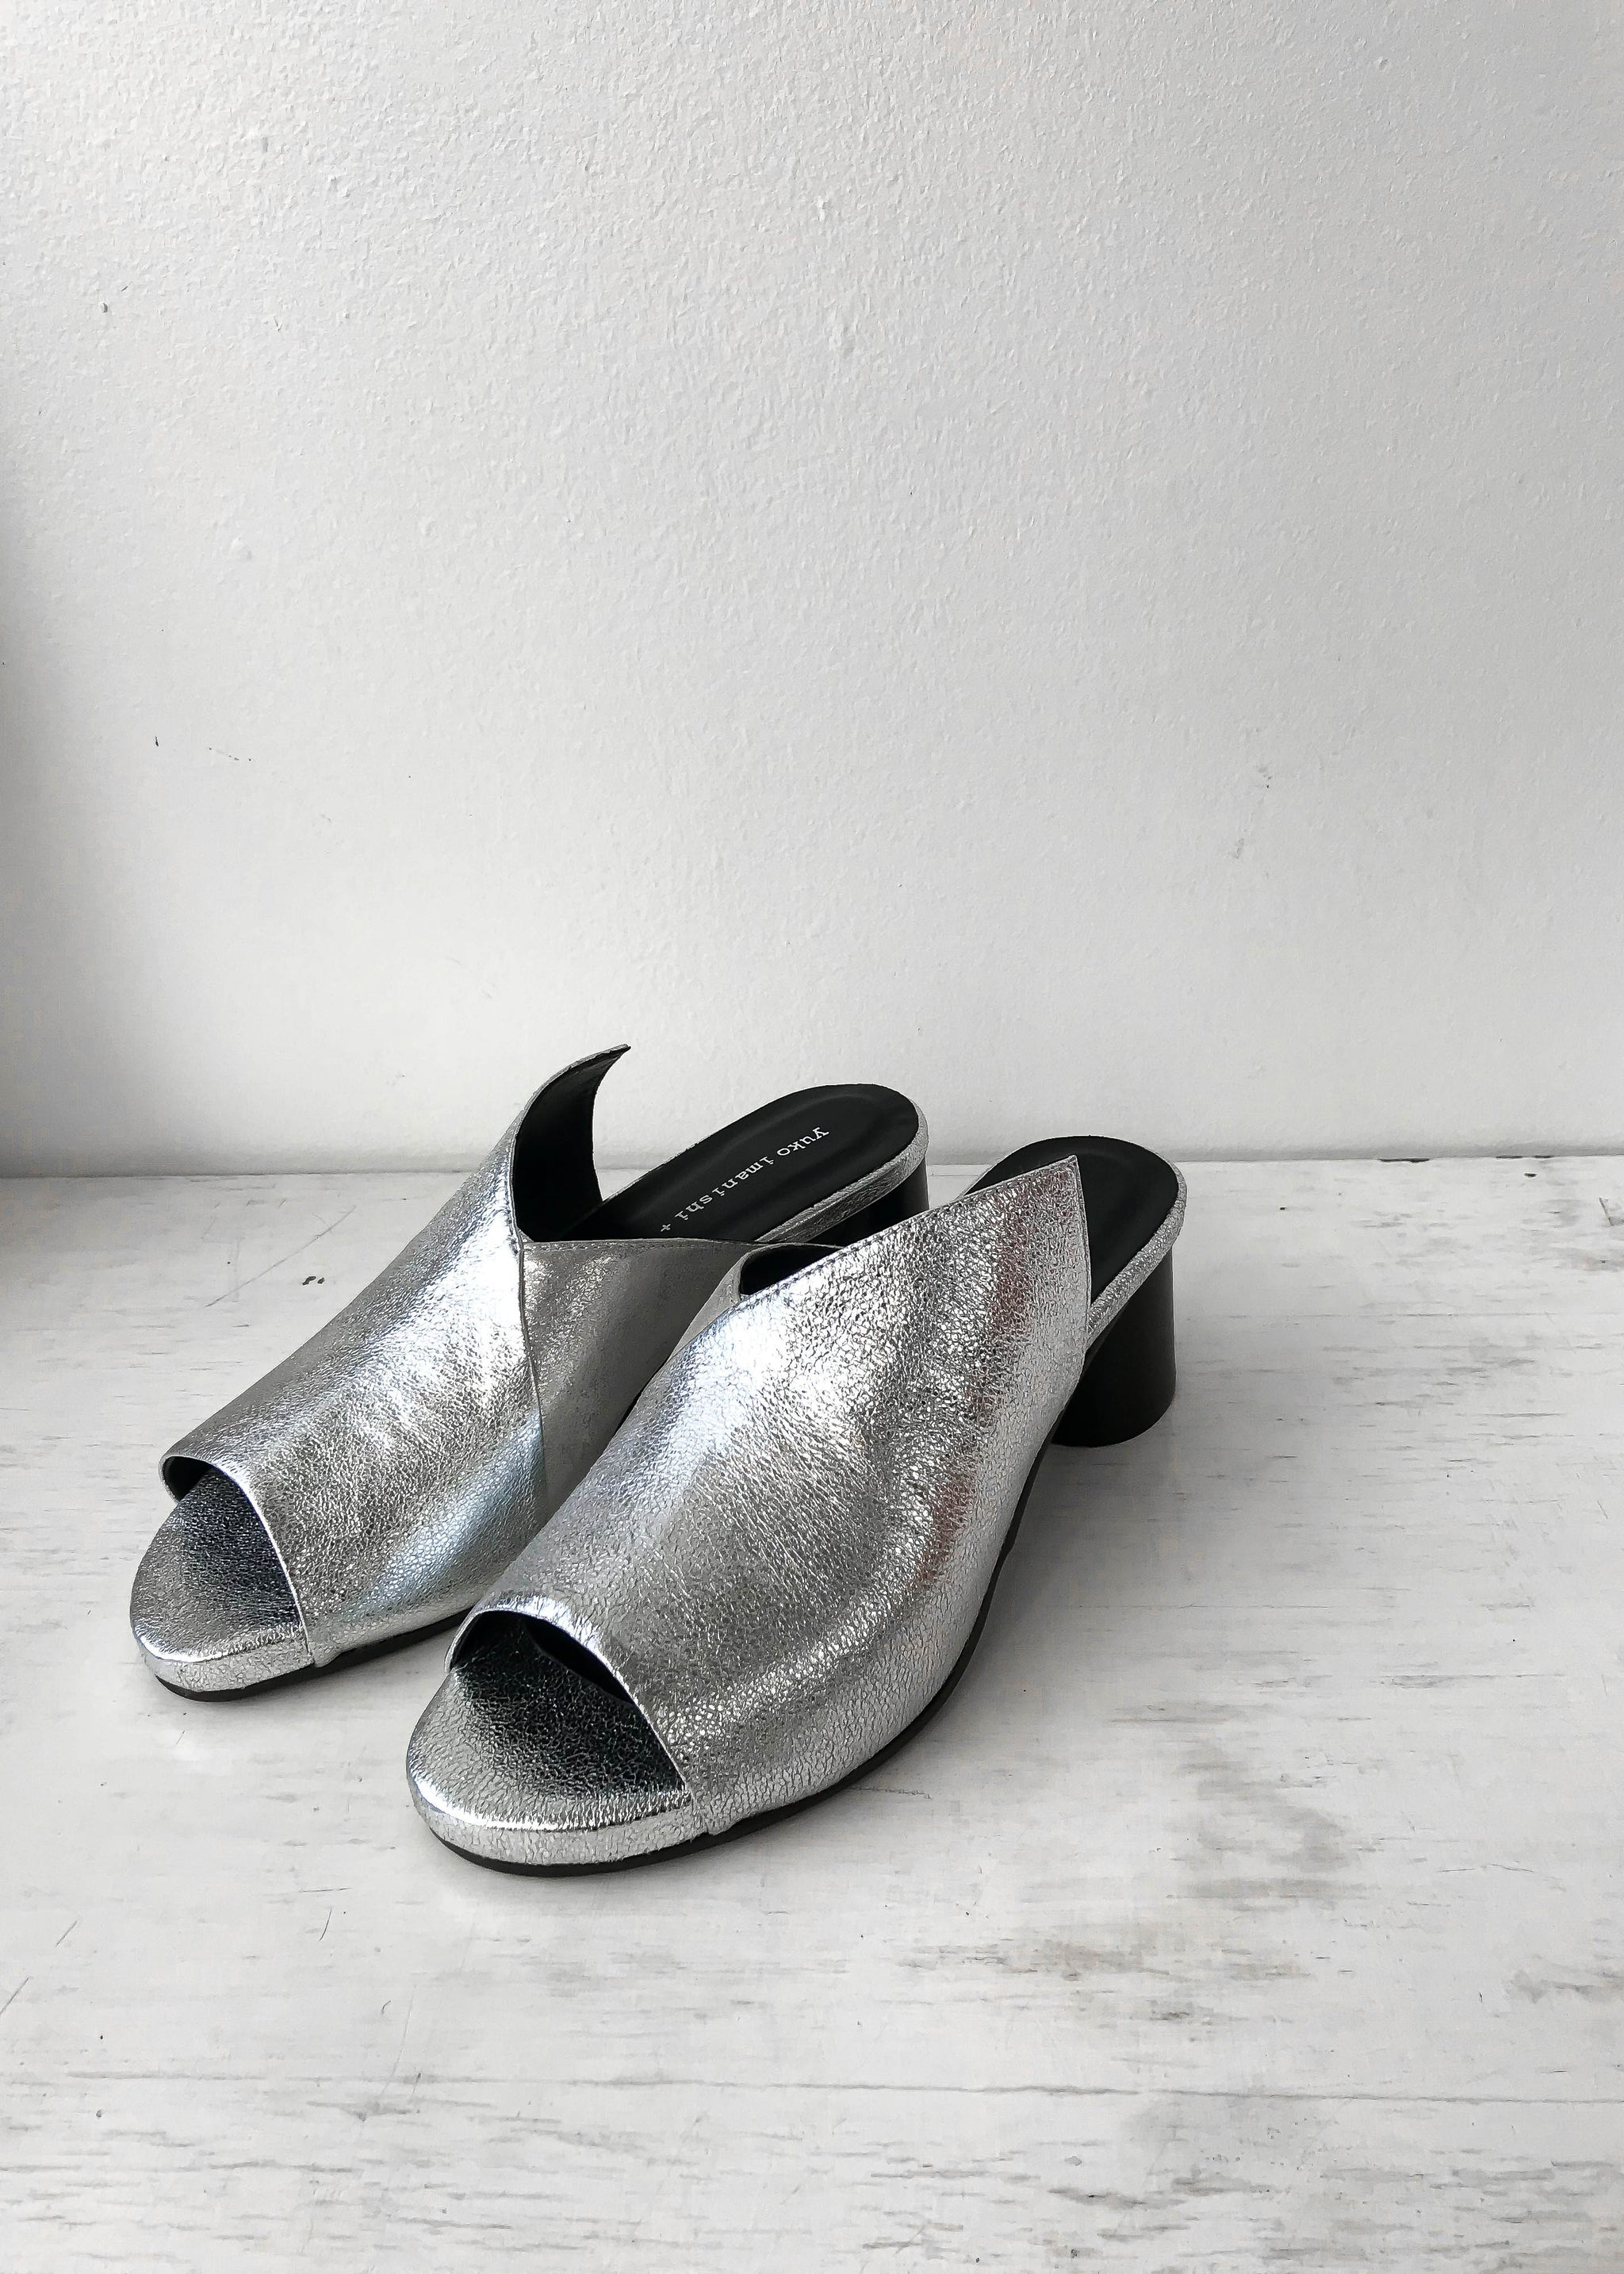 Front view of silver asymmetrical heeled mule